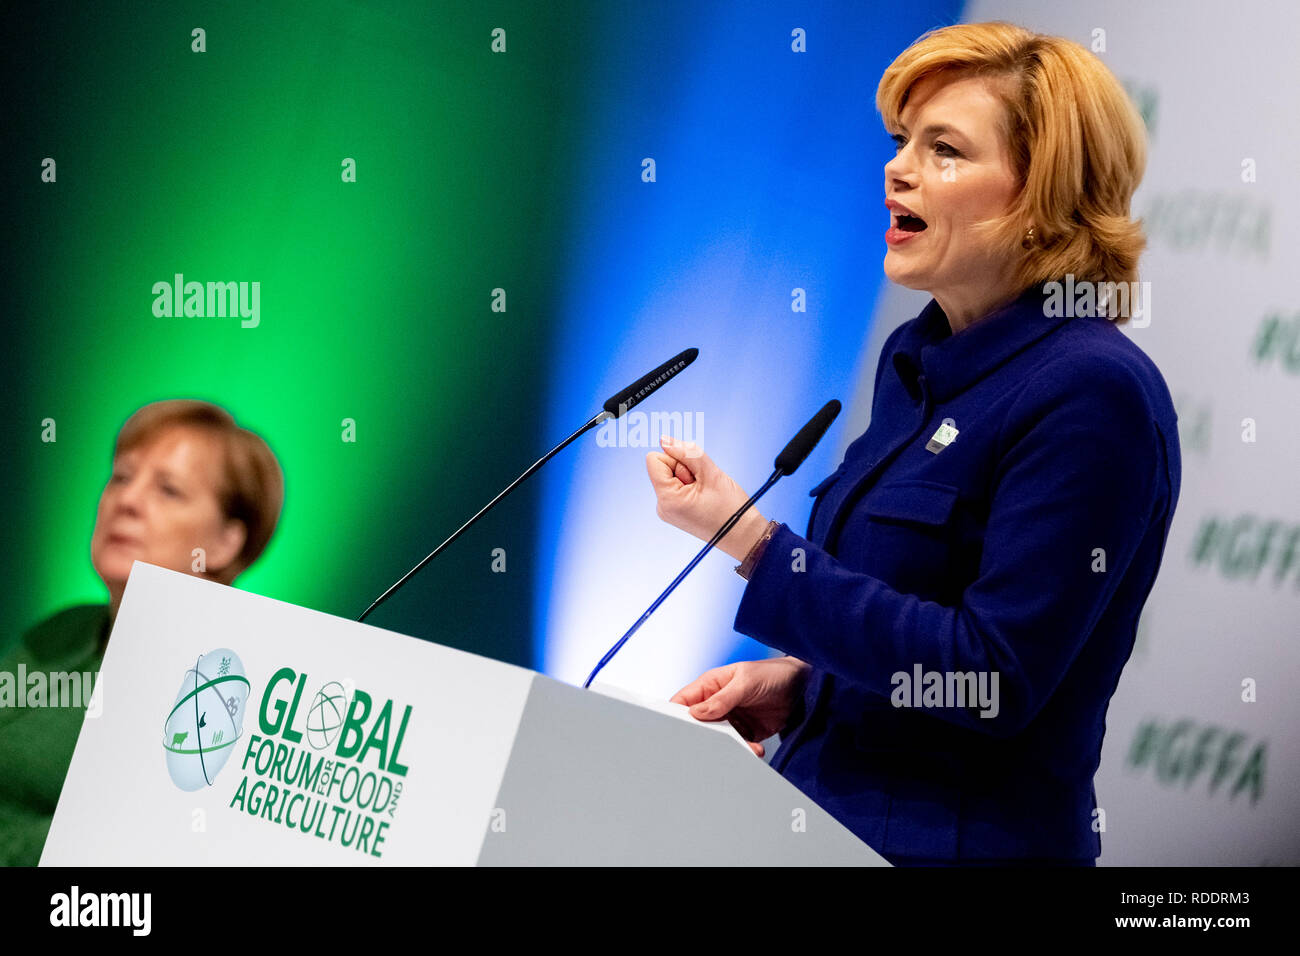 Berlin, Germany  18th Jan, 2019  Julia Klöckner (CDU, r), Federal